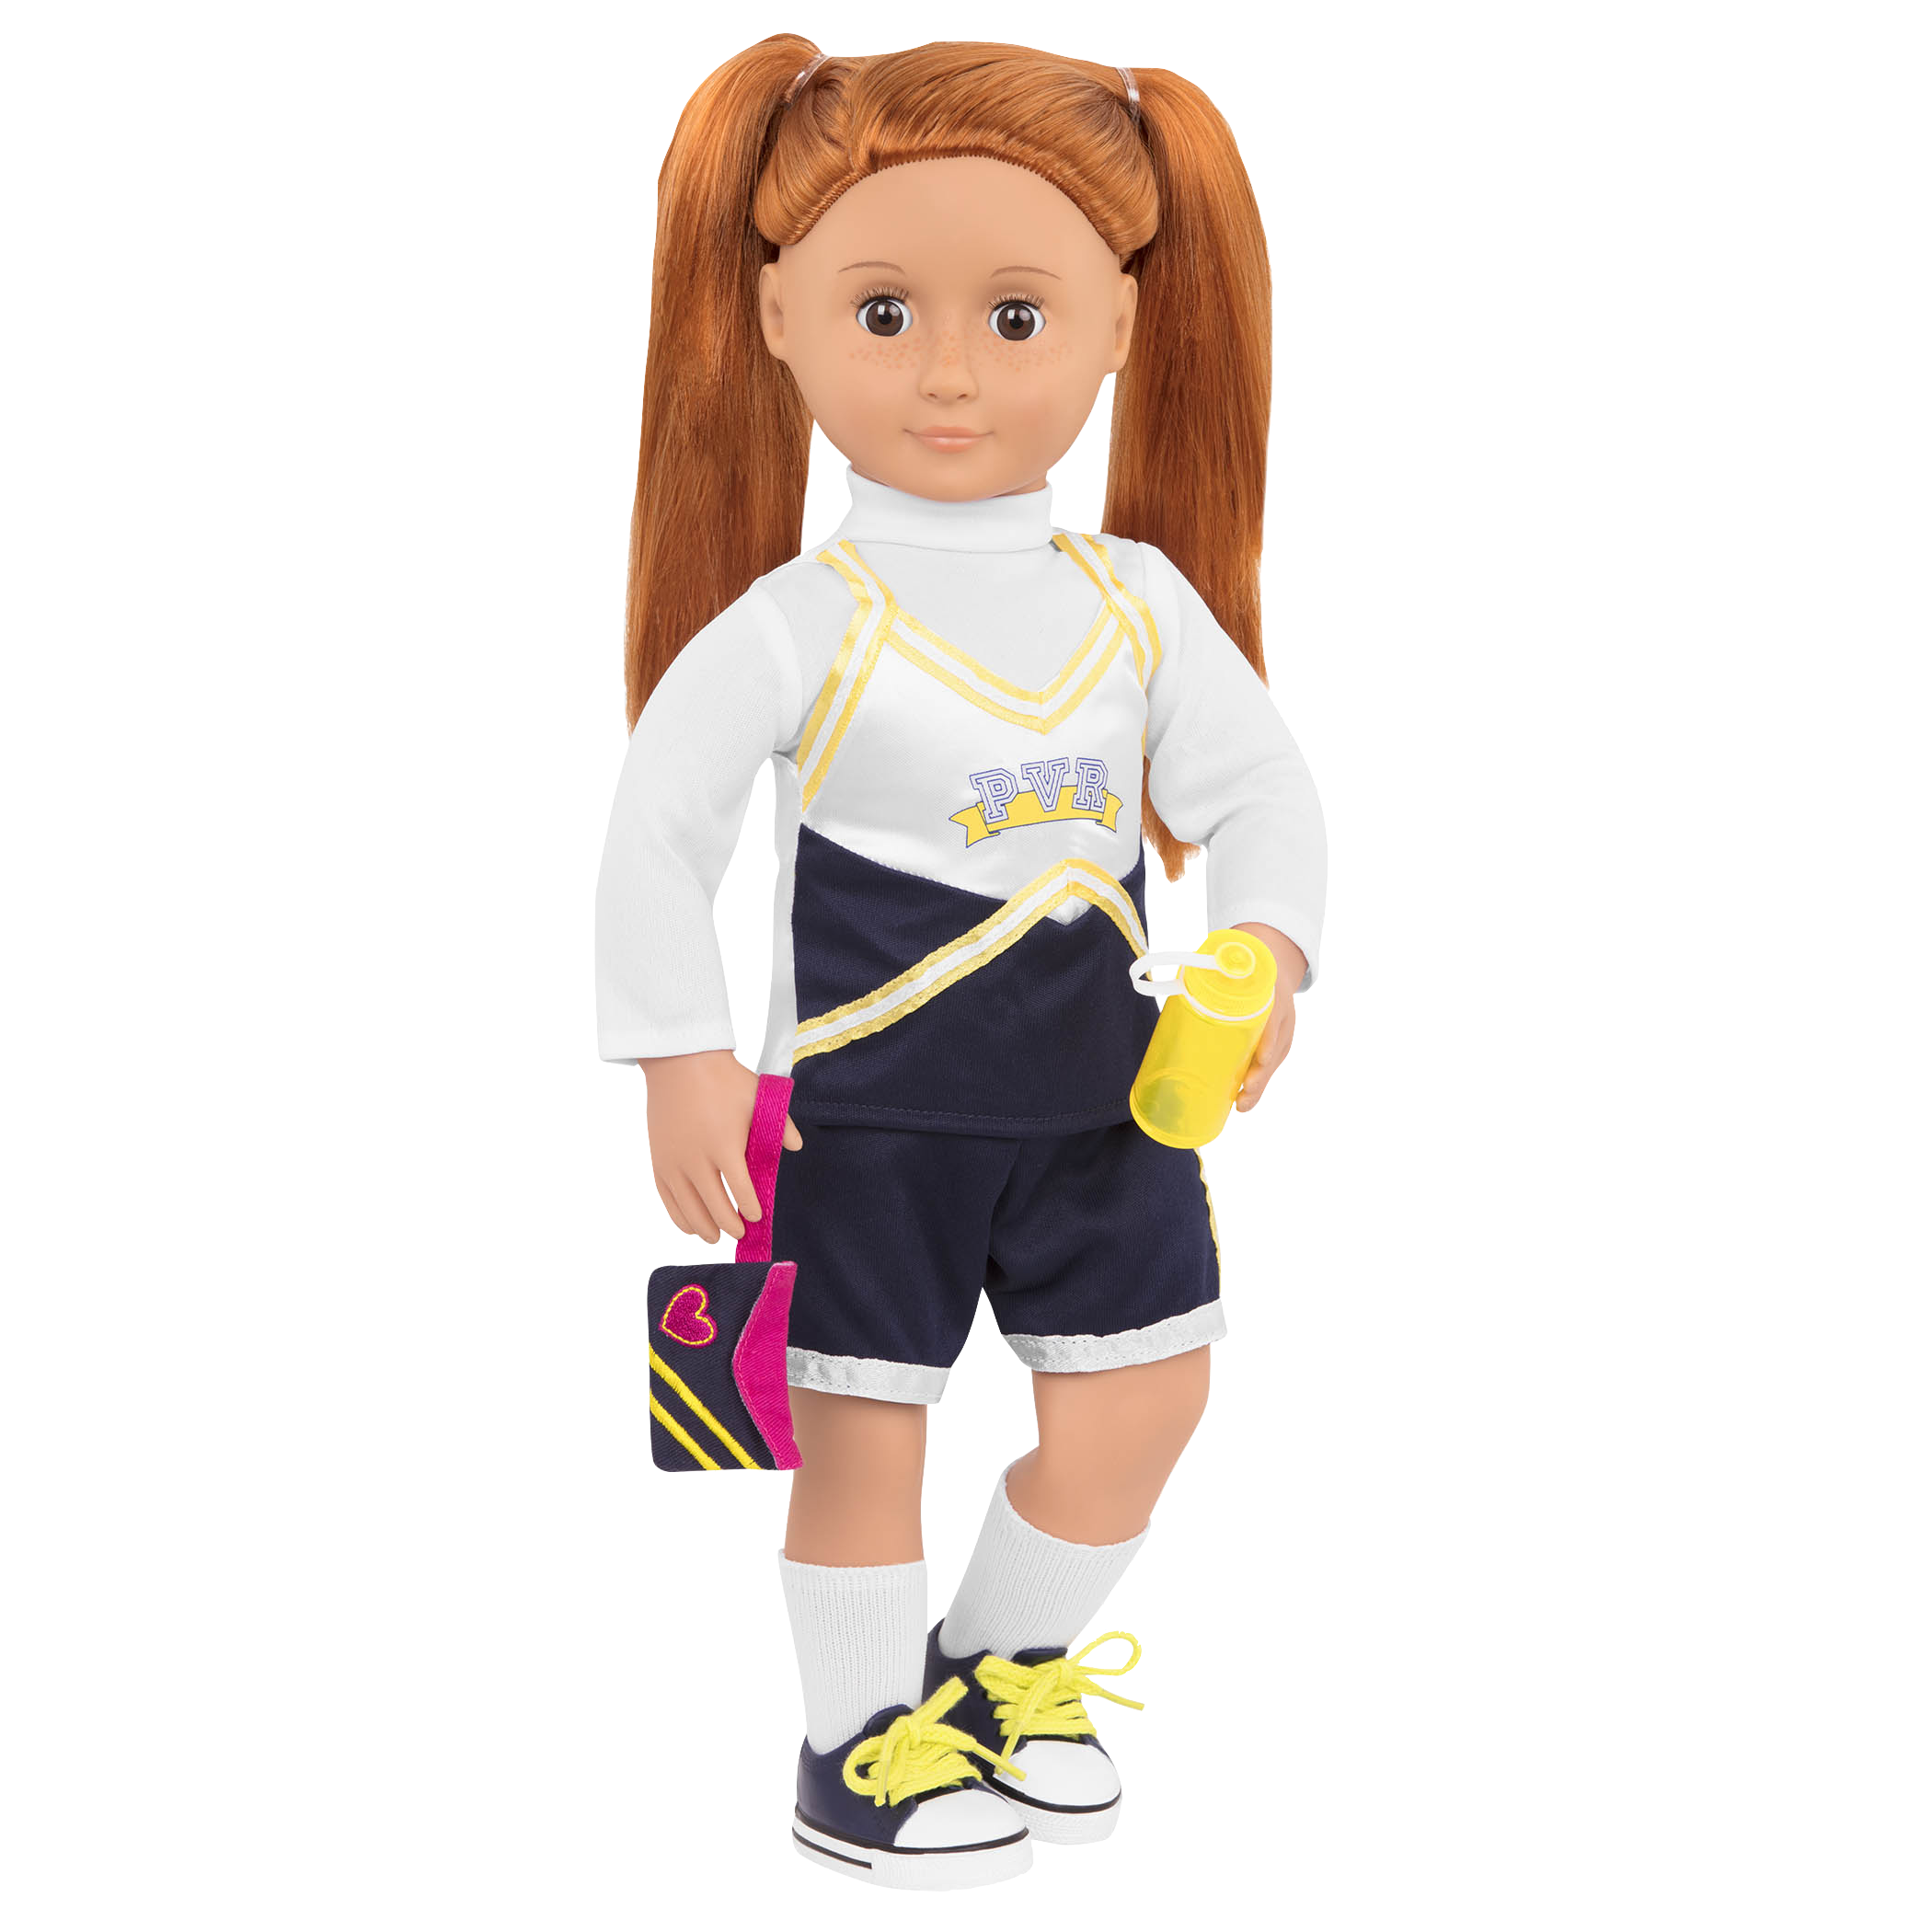 Cheerleader Camp Set Noa doll wearing uniform